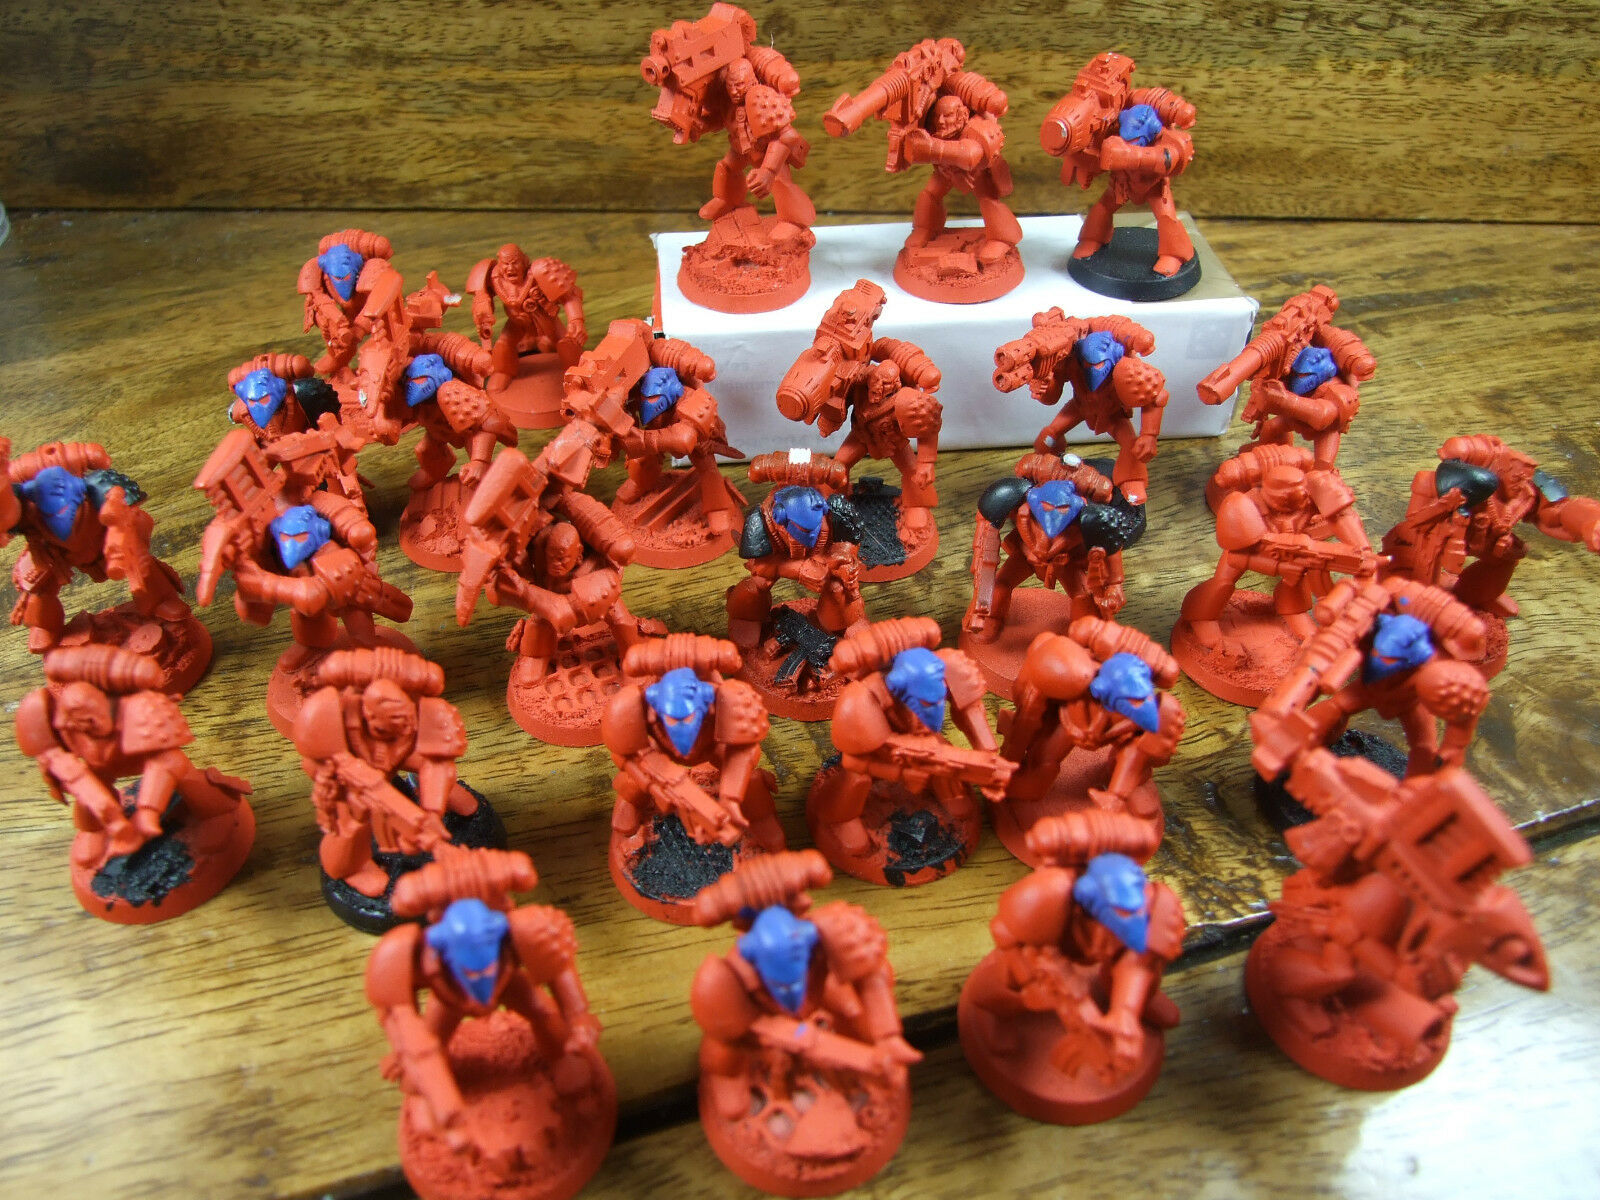 27 CLASSIC PLASTIC RBT01 SPACE MARINES SLIGHTLY CONverdeED PAINTED (931)